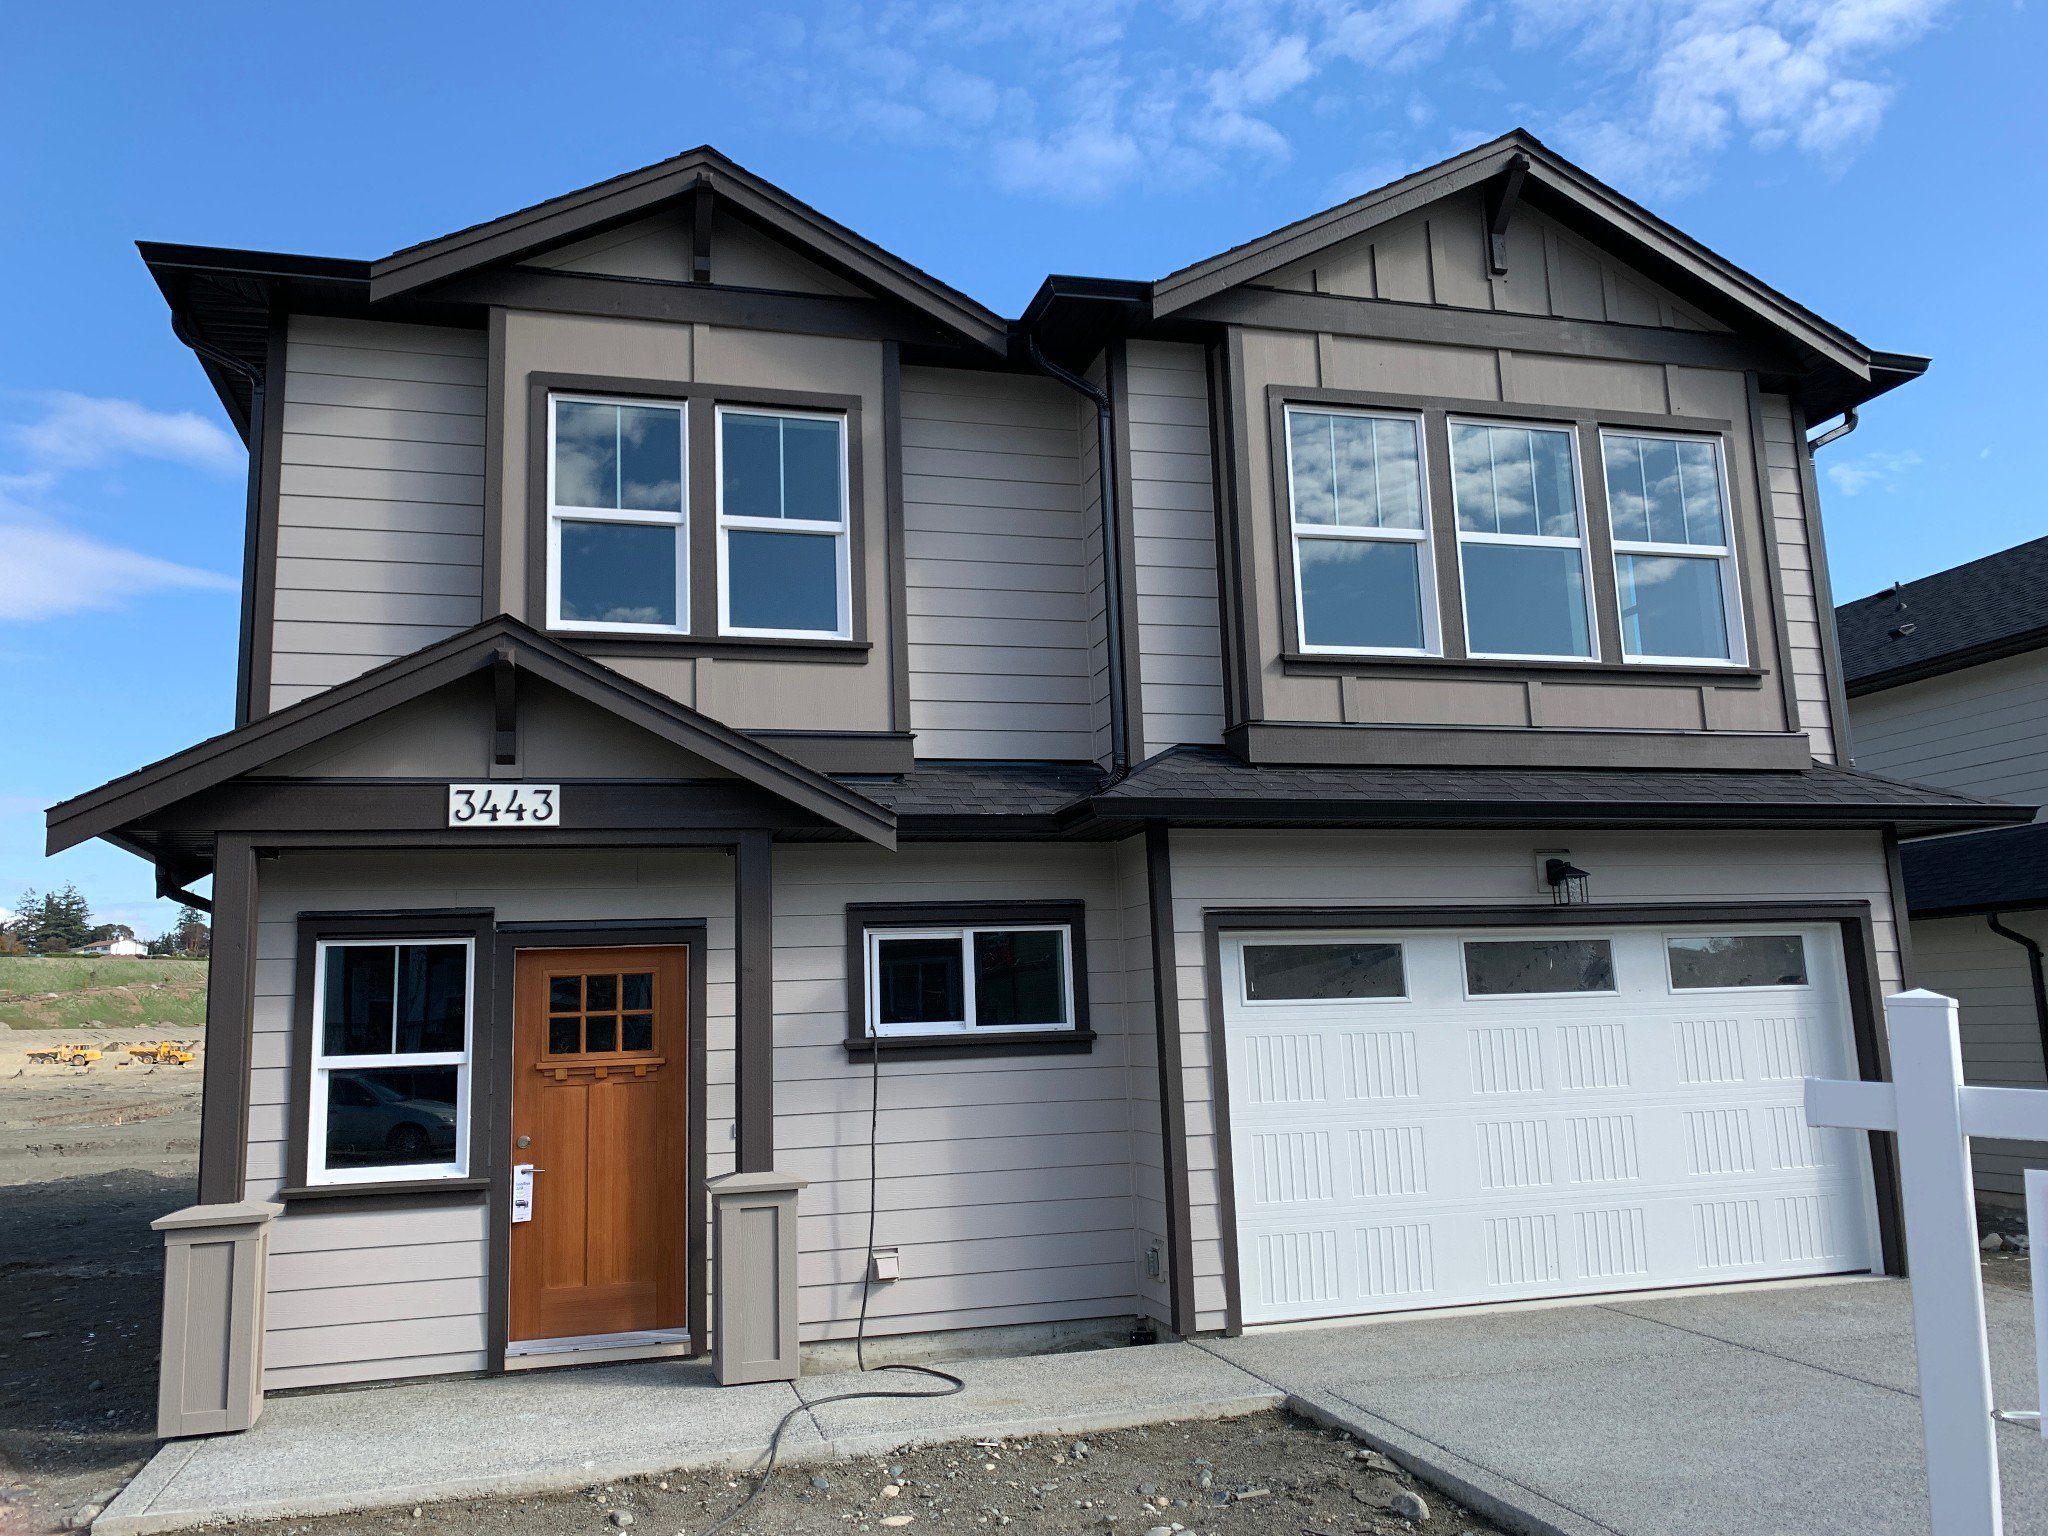 Main Photo: 3443 Sparrowhawk Avenue in : Co Royal Bay Single Family Detached for sale (Colwood)  : MLS®# 415100